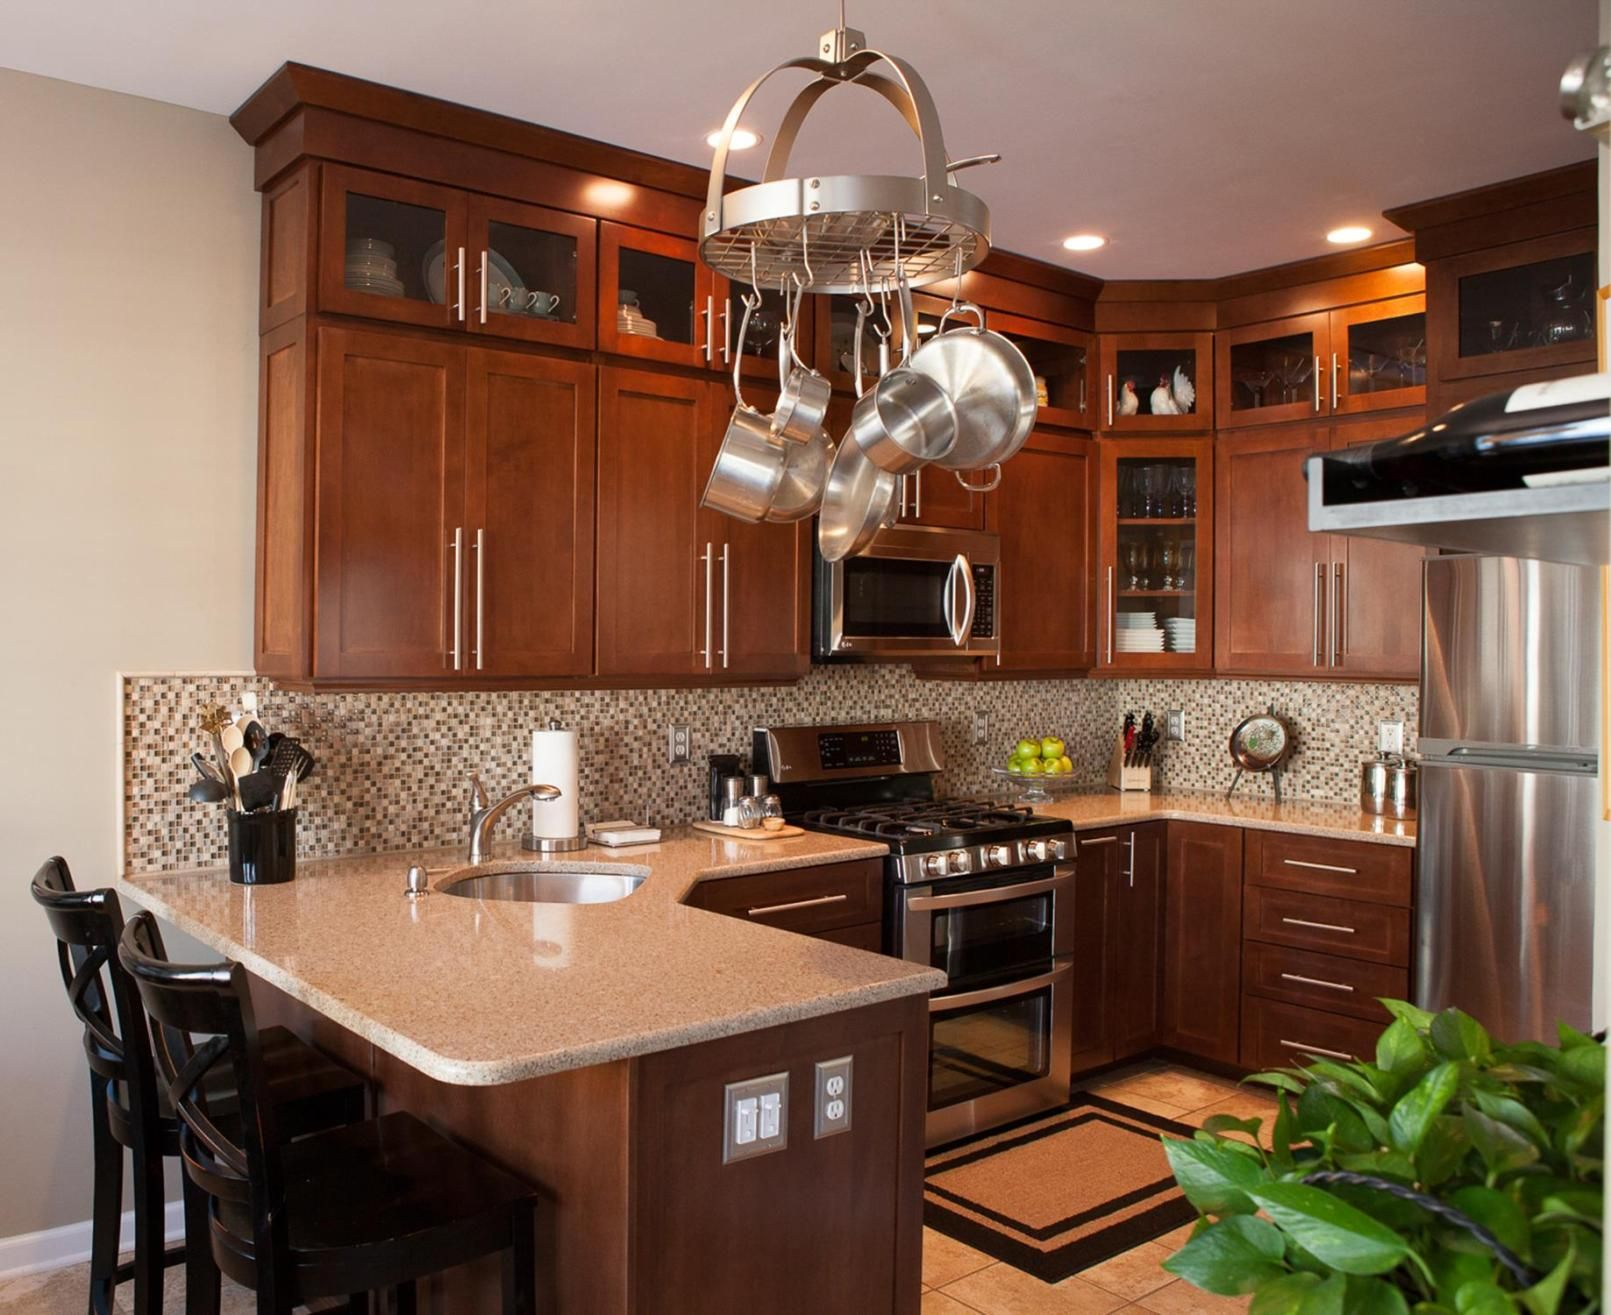 39 Awesome Townhouse Kitchen Remodel Design Daily Home List